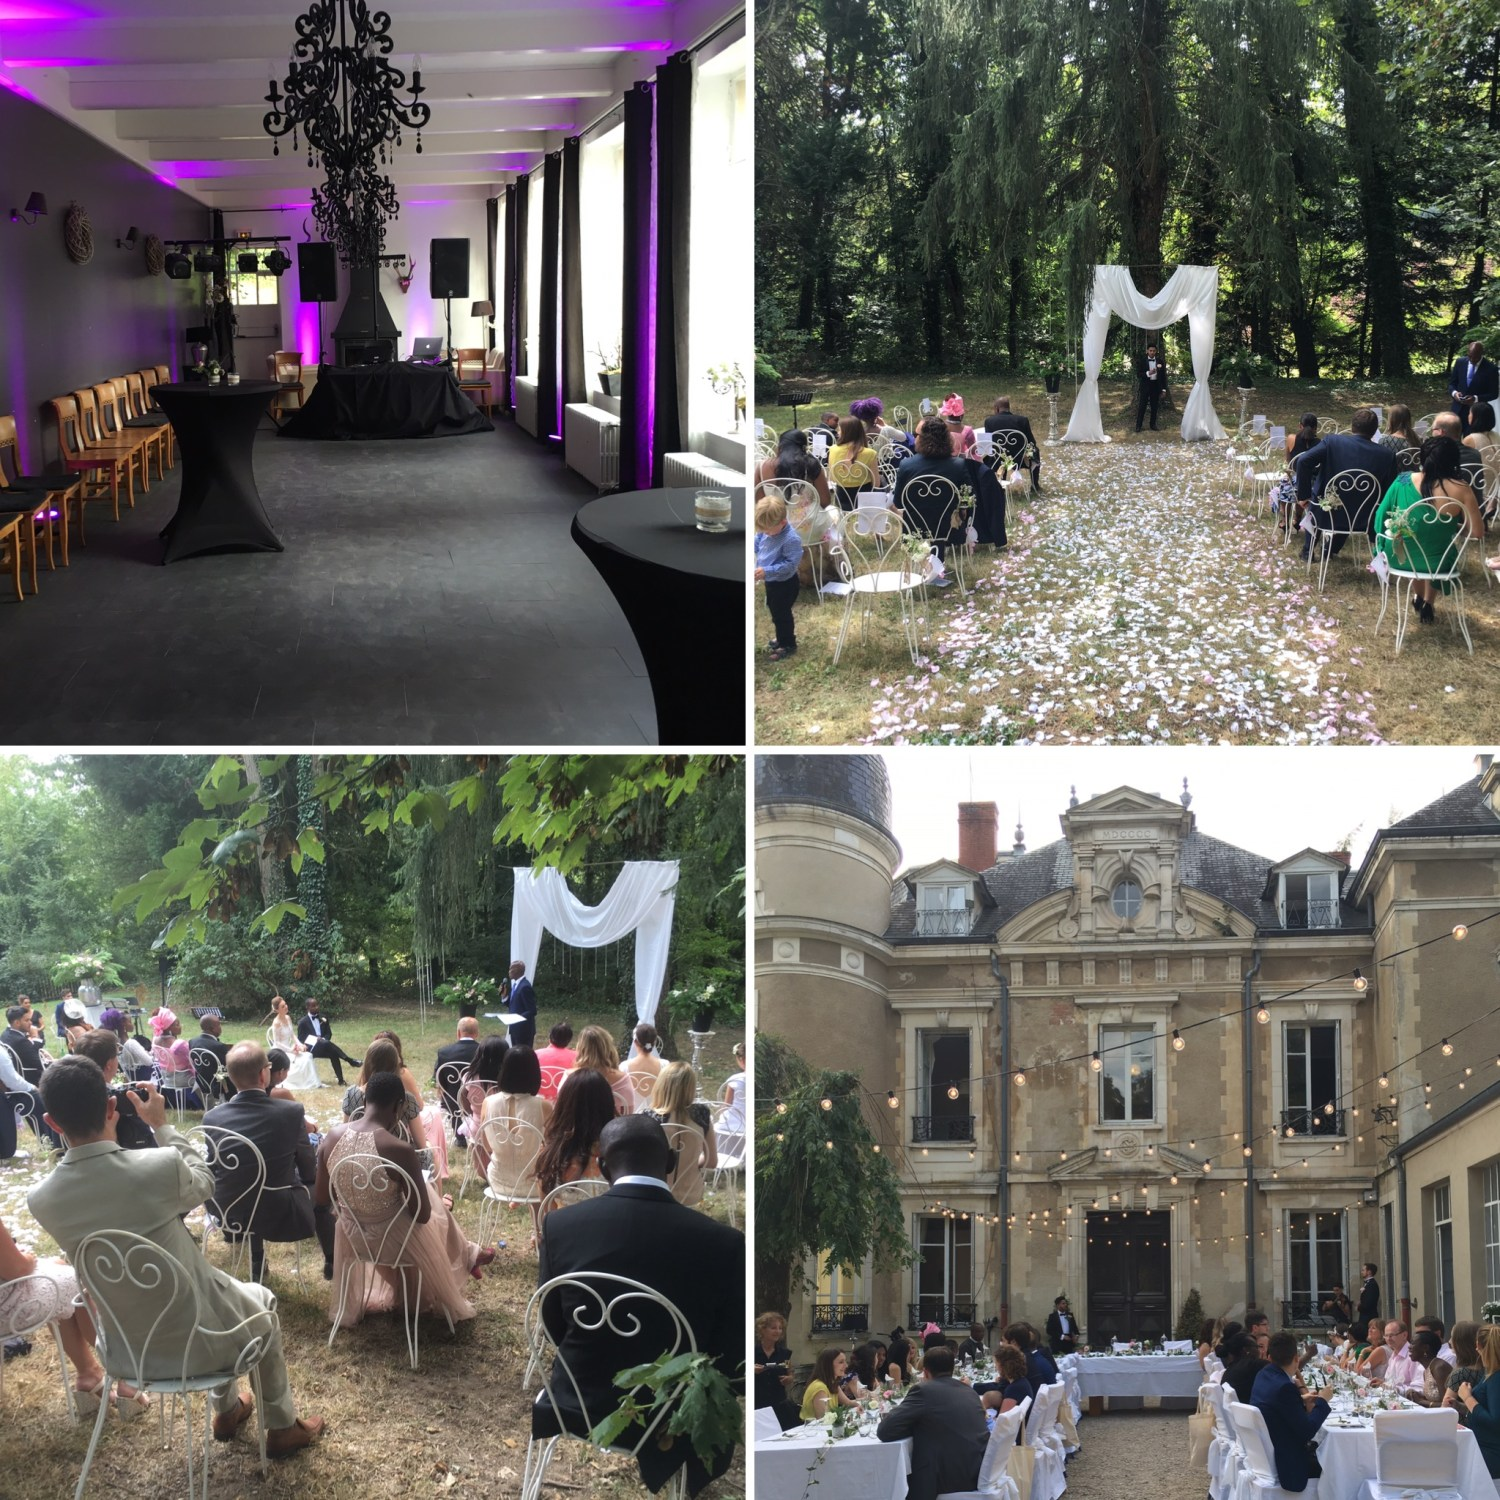 DJ, Bourgogne, wedding, ceremony, international, english